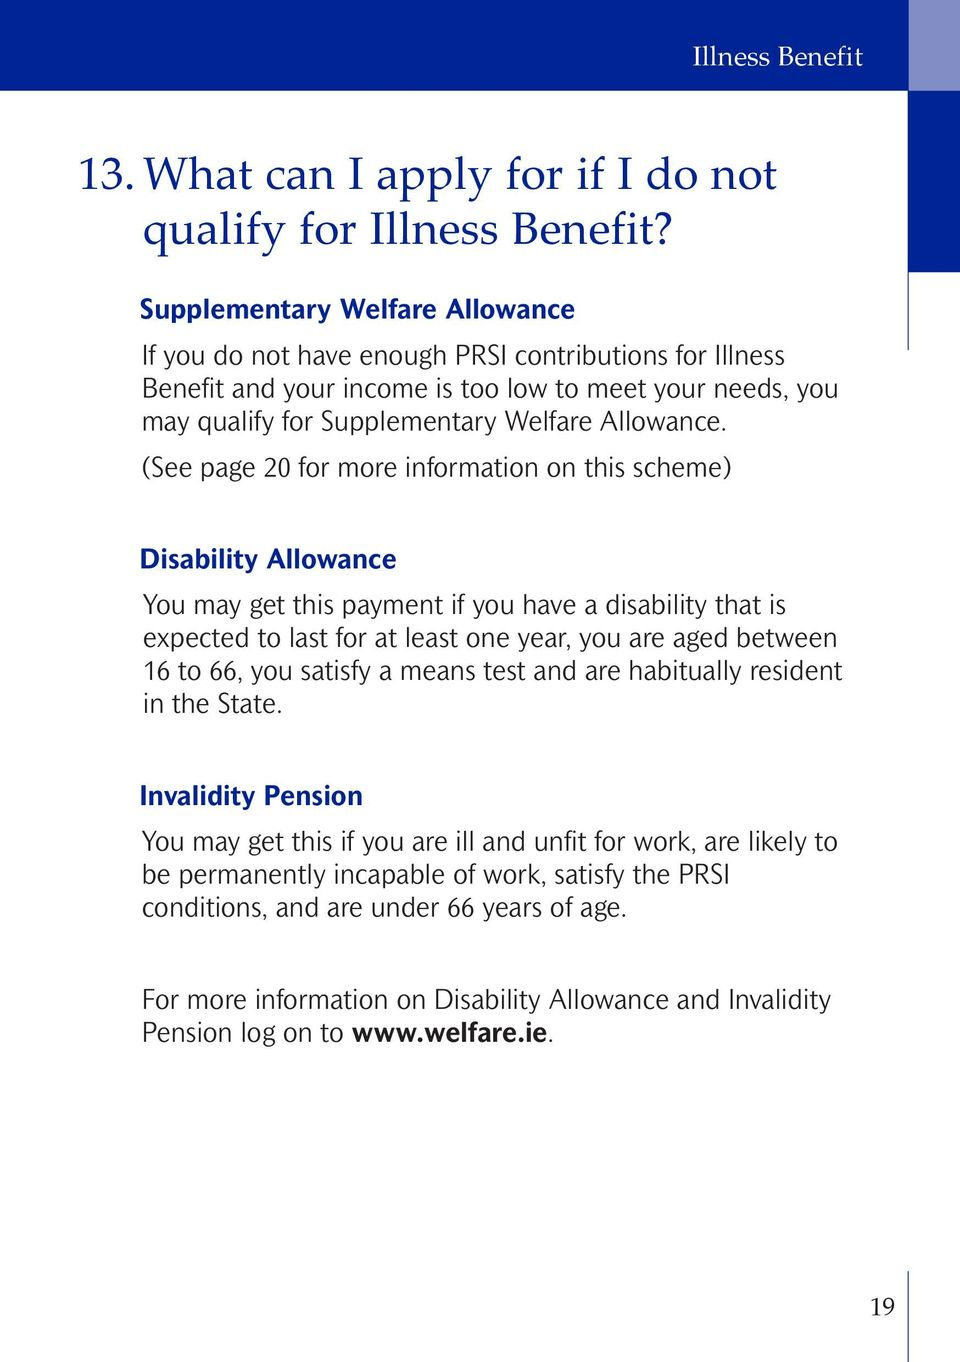 (See page 20 for more information on this scheme) Disability Allowance You may get this payment if you have a disability that is expected to last for at least one year, you are aged between 16 to 66,